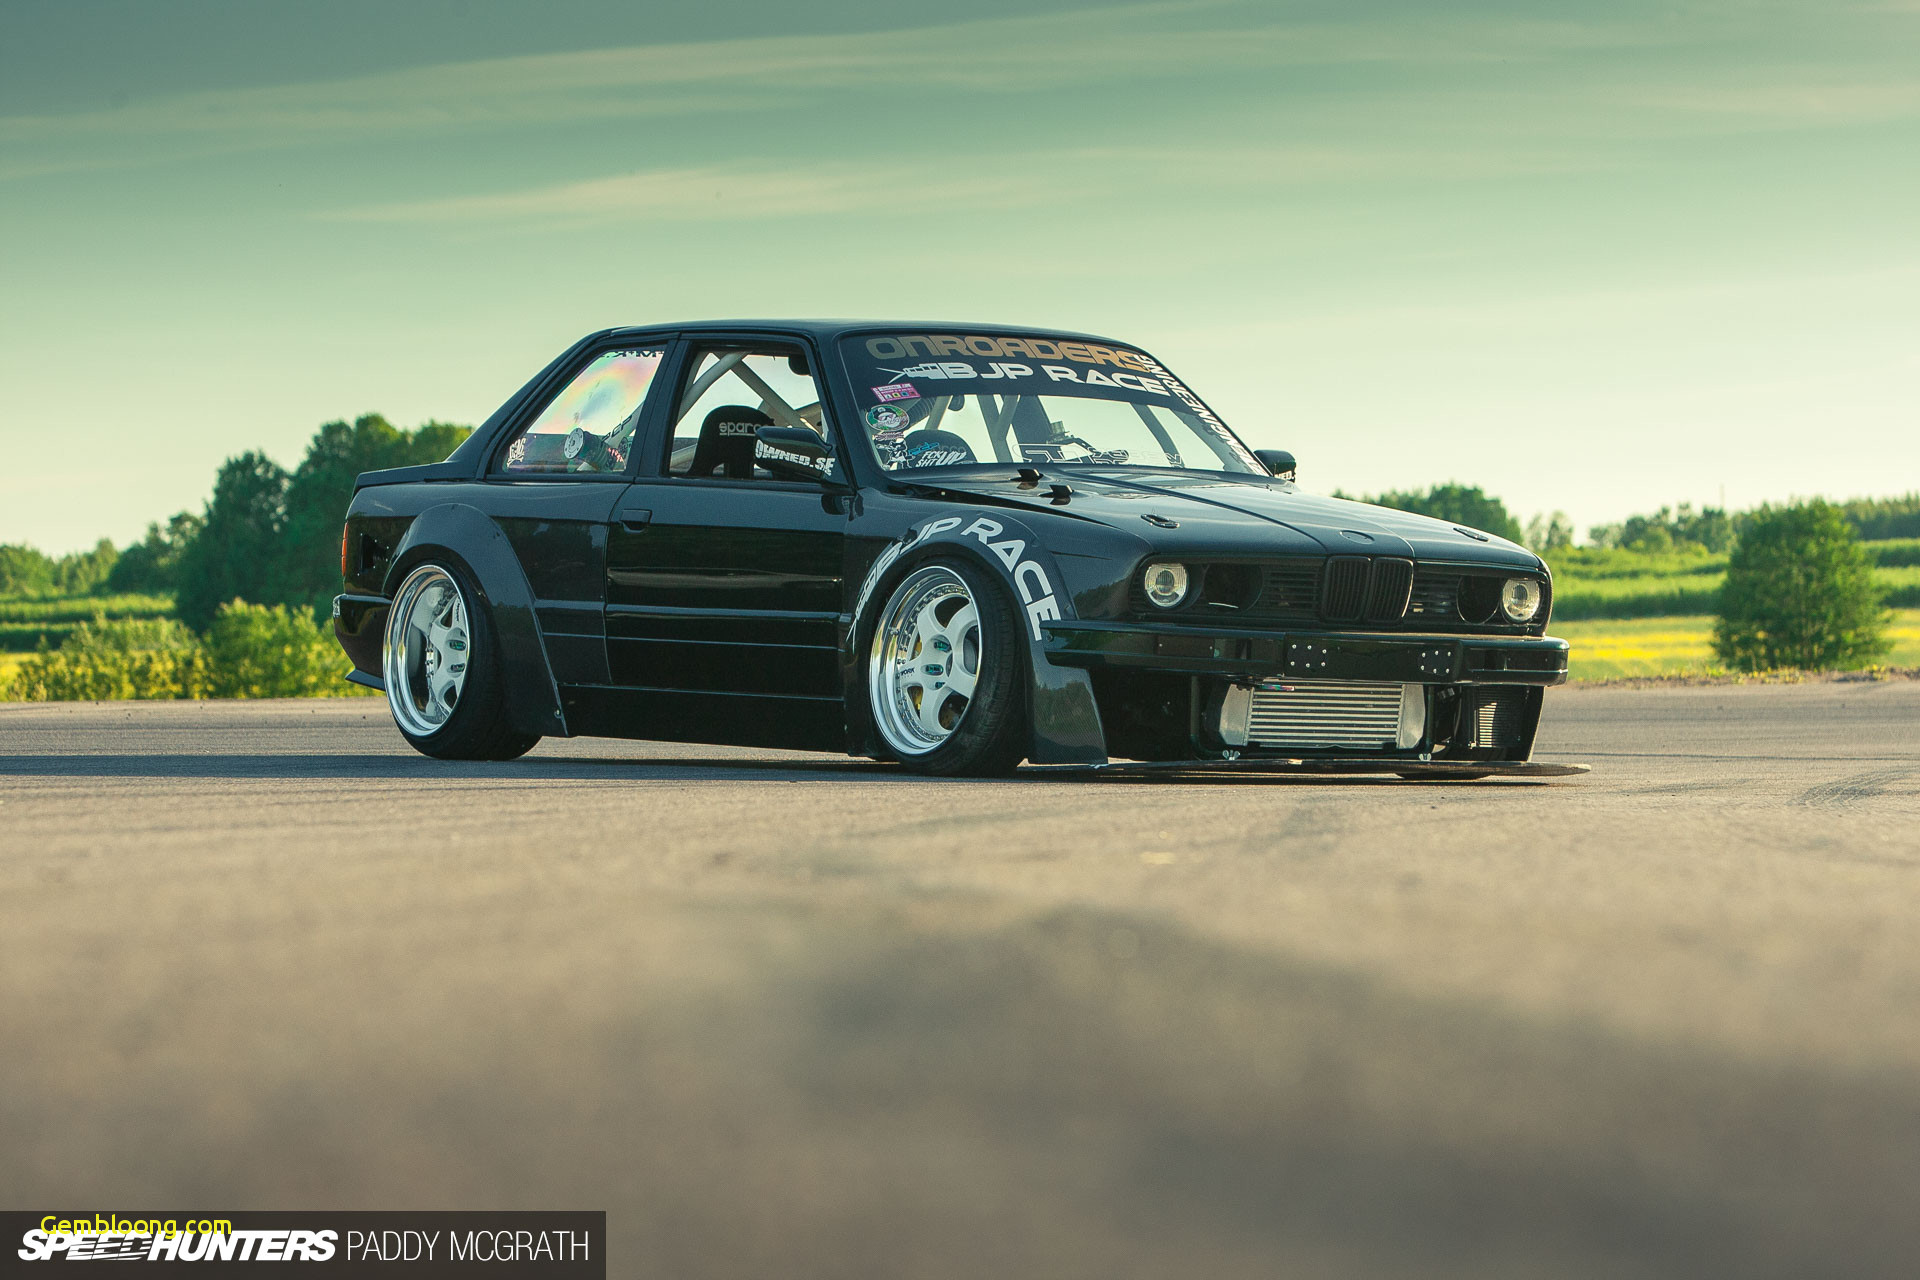 1920x1280 Bmw M3 E30 Wallpaper Beautiful Bmw E30 Hqfx Desktop 39